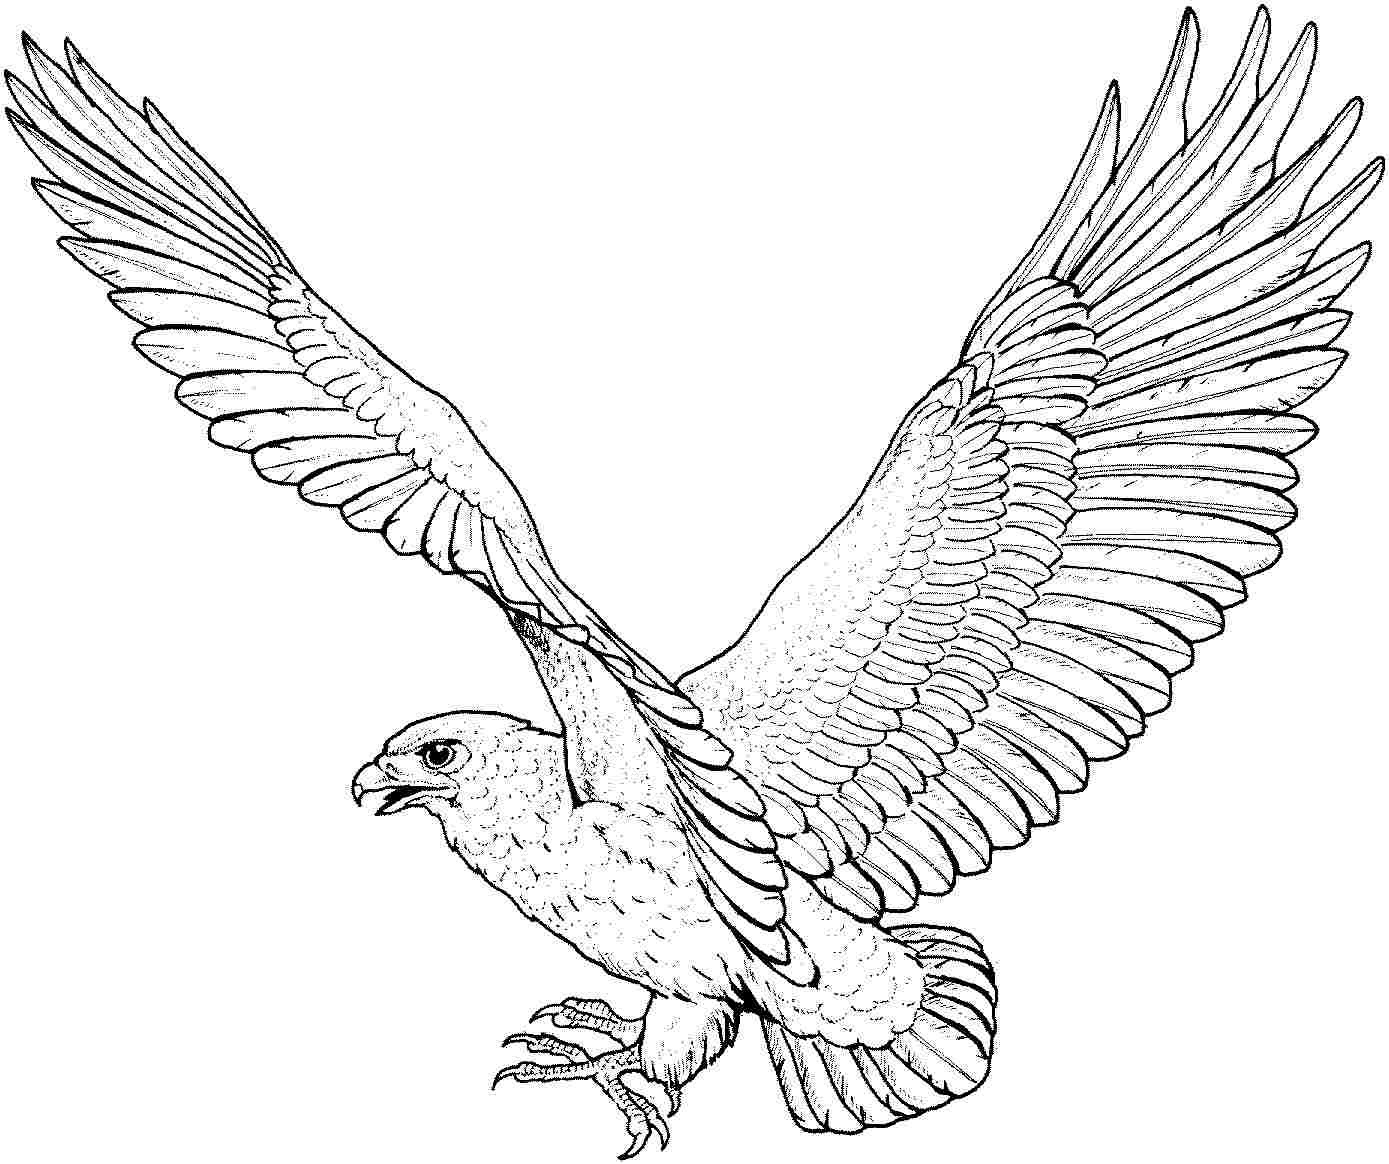 eagle coloring pages printable free printable eagle coloring pages for kids eagle printable coloring pages